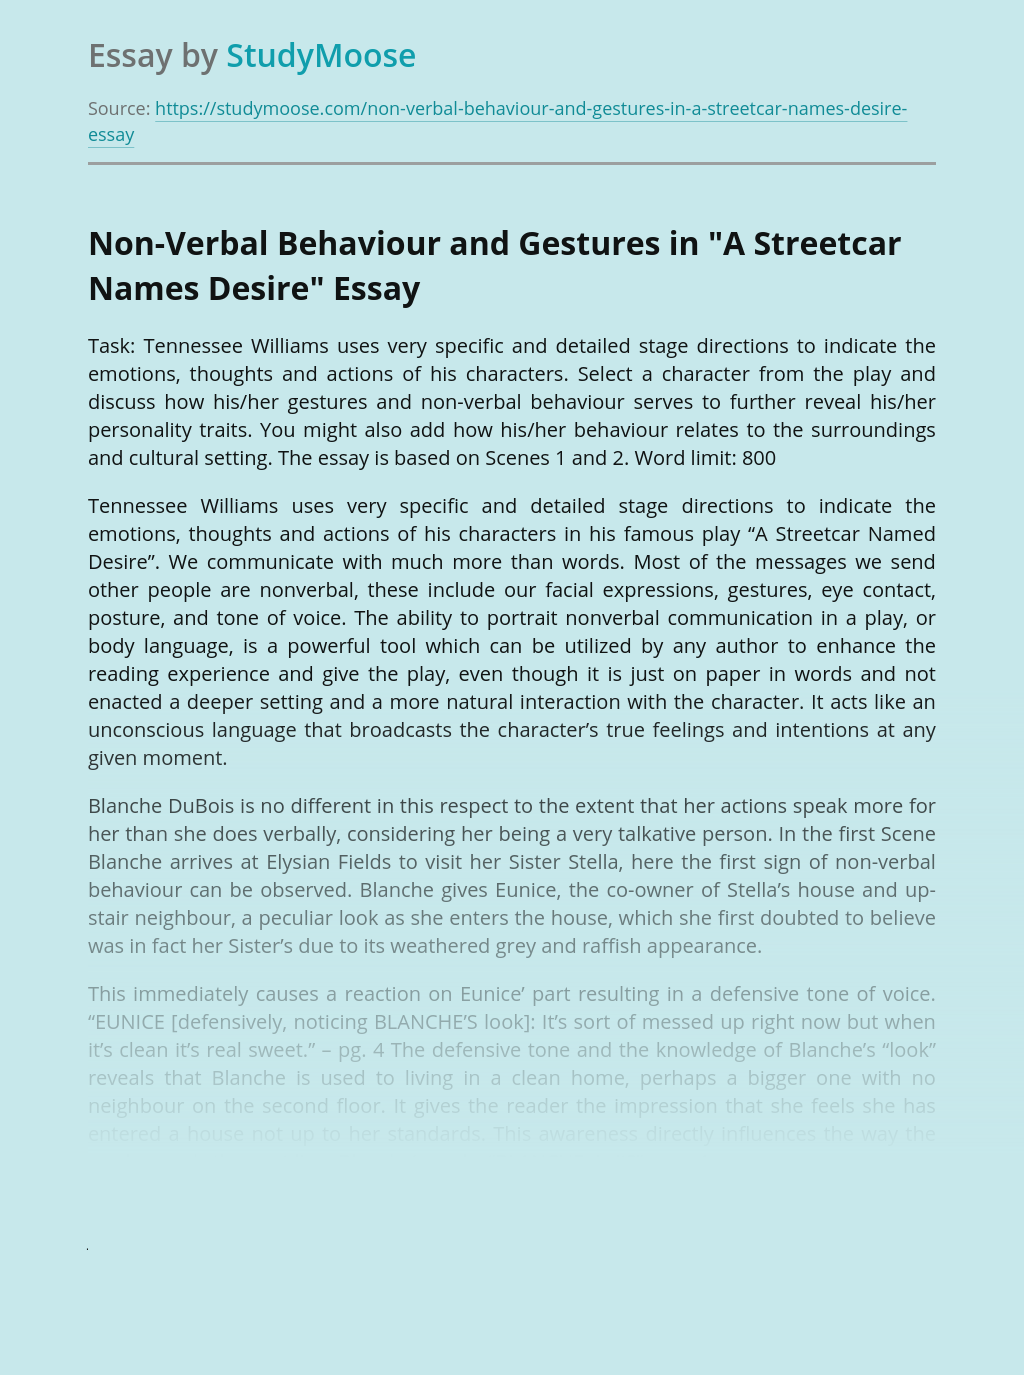 """Non-Verbal Behaviour and Gestures in """"A Streetcar Names Desire"""""""